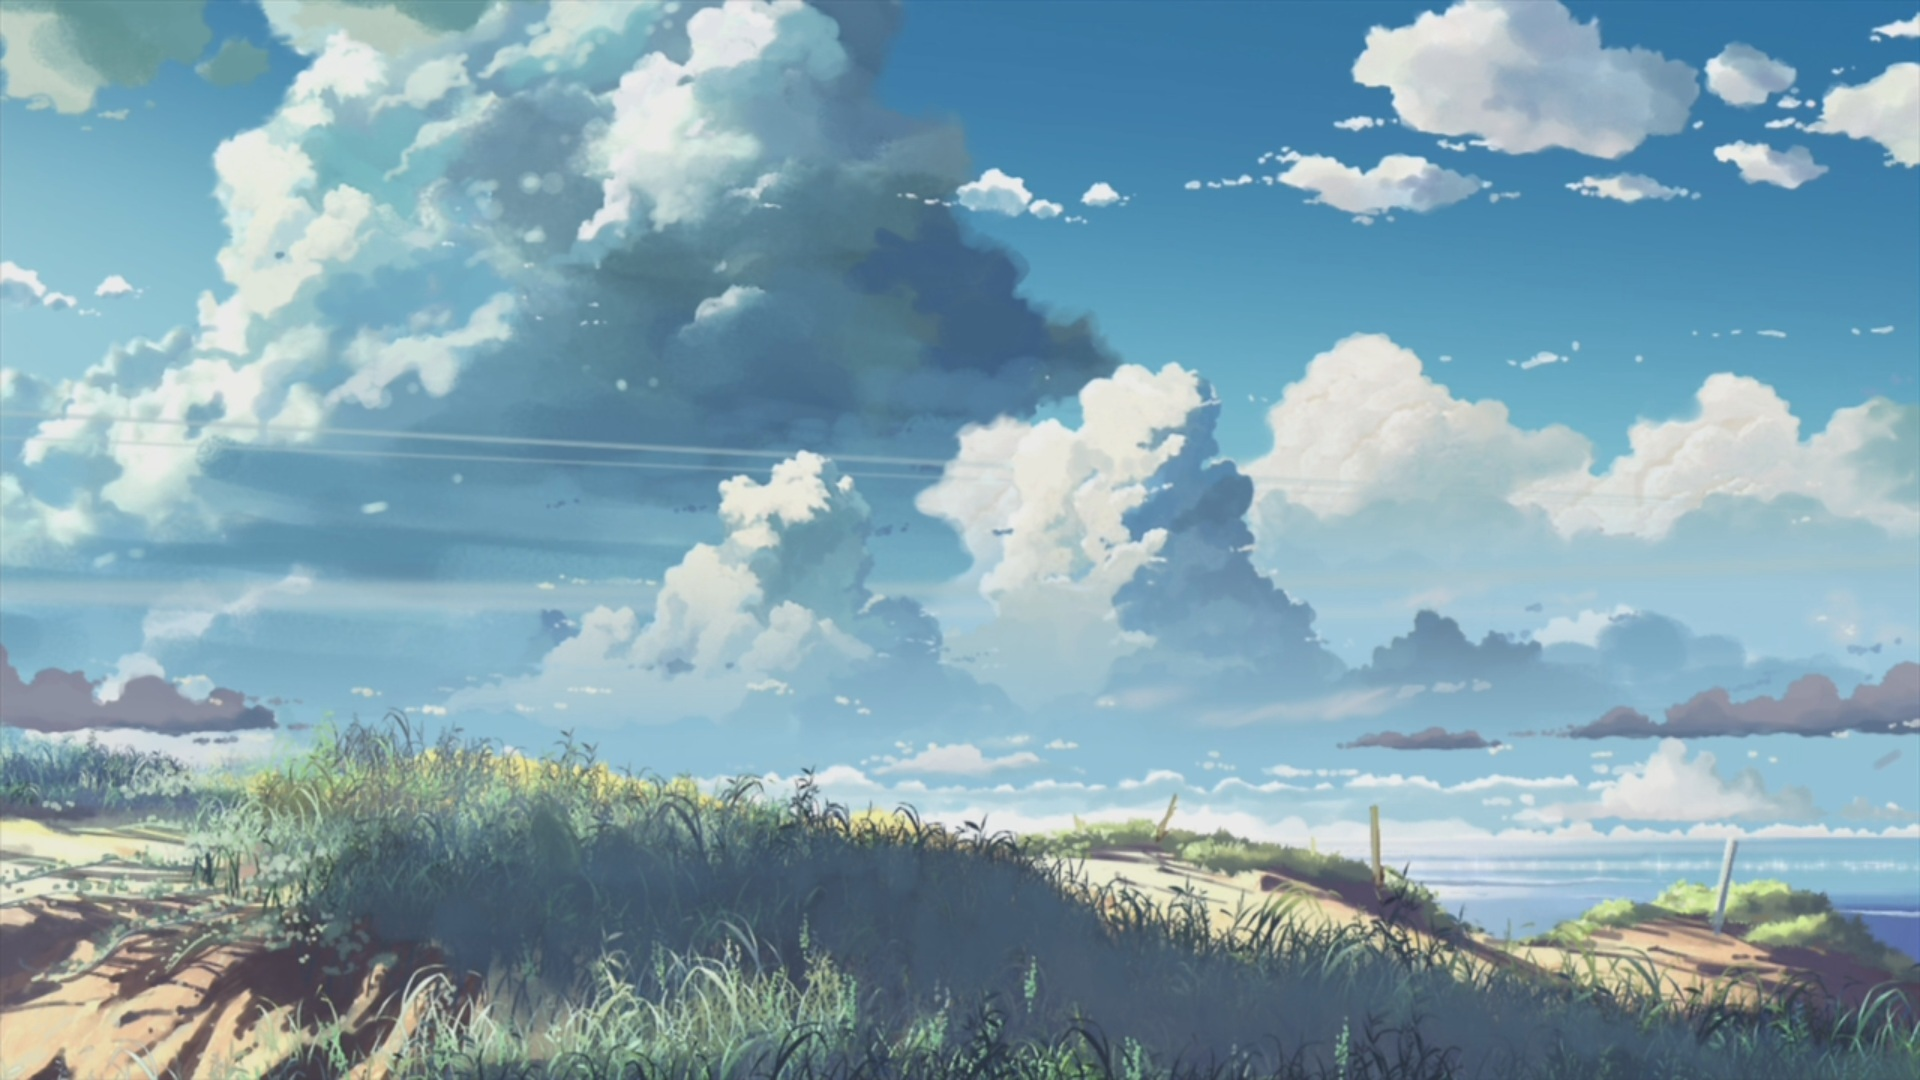 Anime Scenery Wallpaper Free Desktop Room Wallpapers